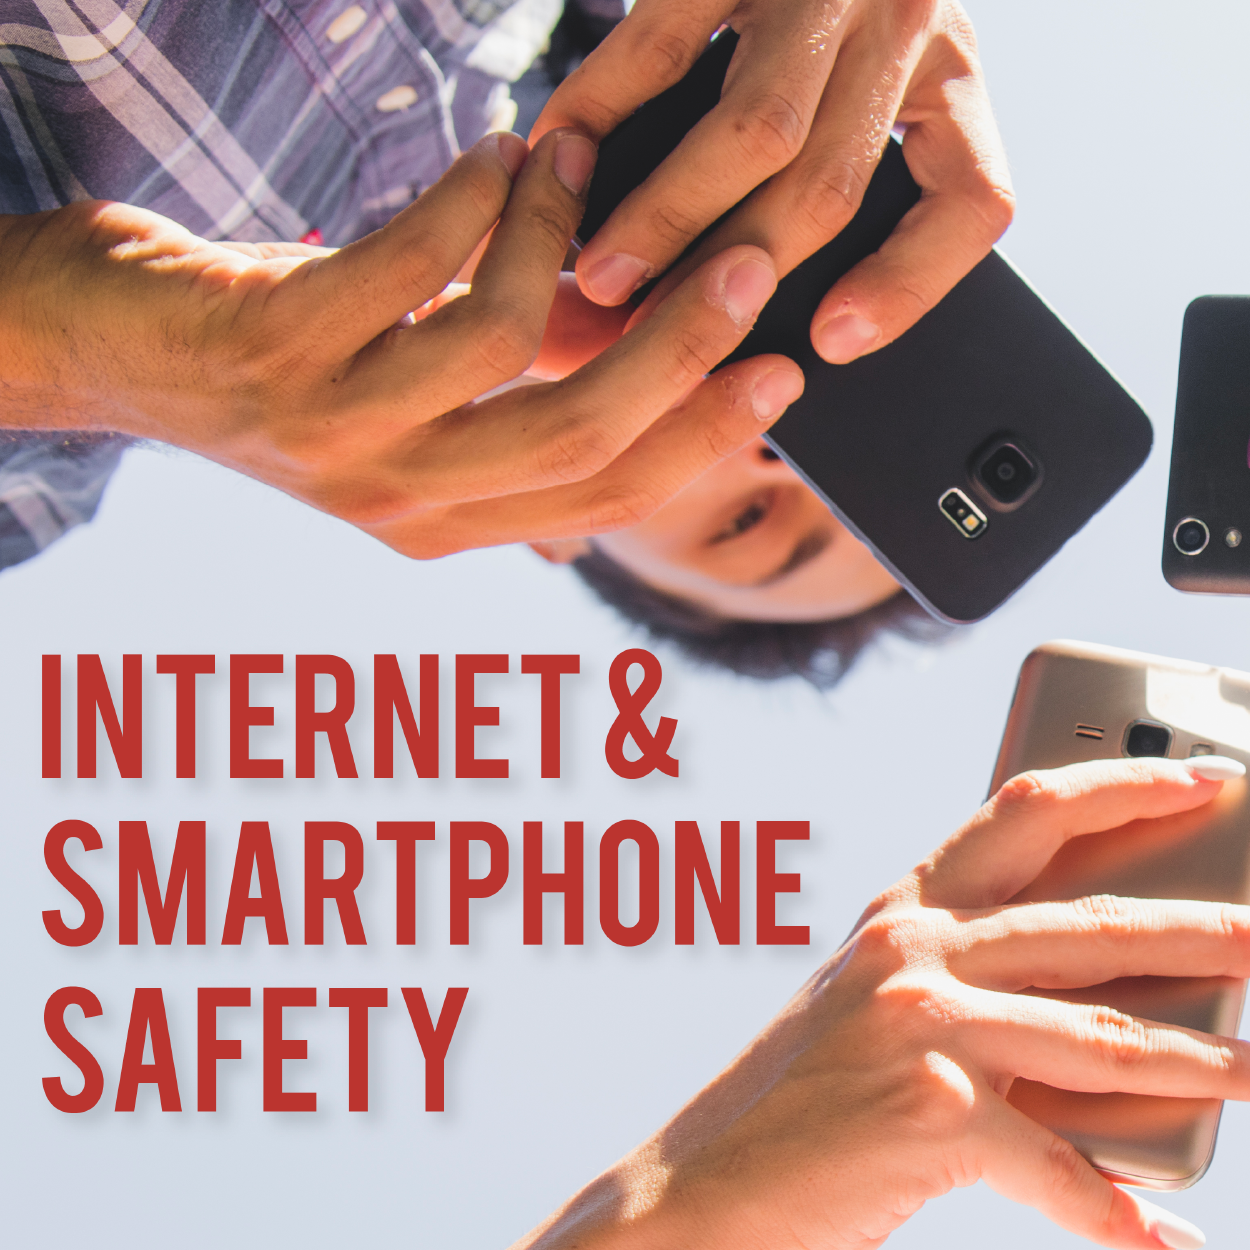 Teen holding smartphones with text 'Internet and Smartphone Safety'